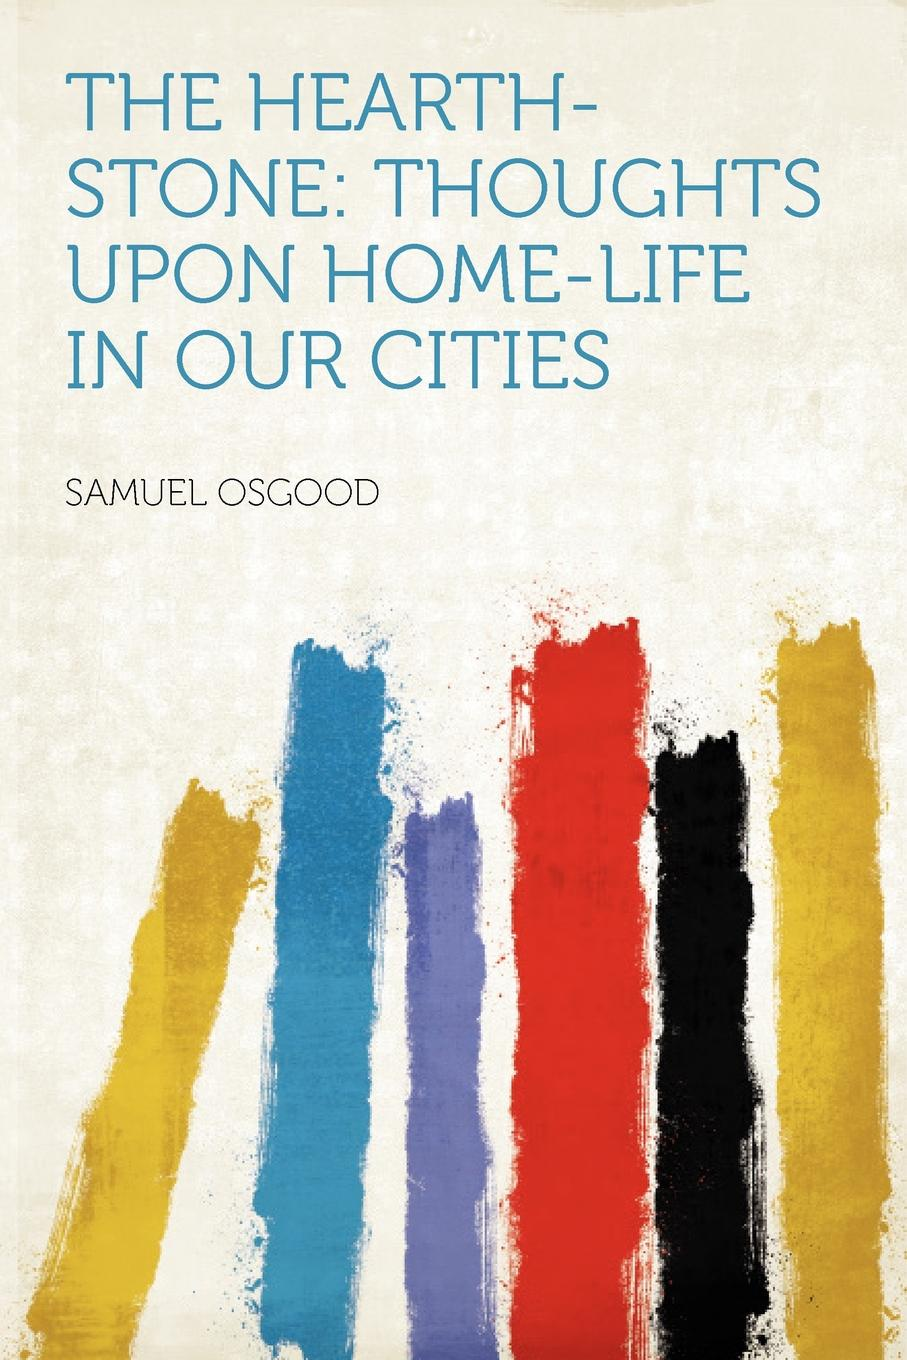 The Hearth-stone. Thoughts Upon Home-life in Our Cities